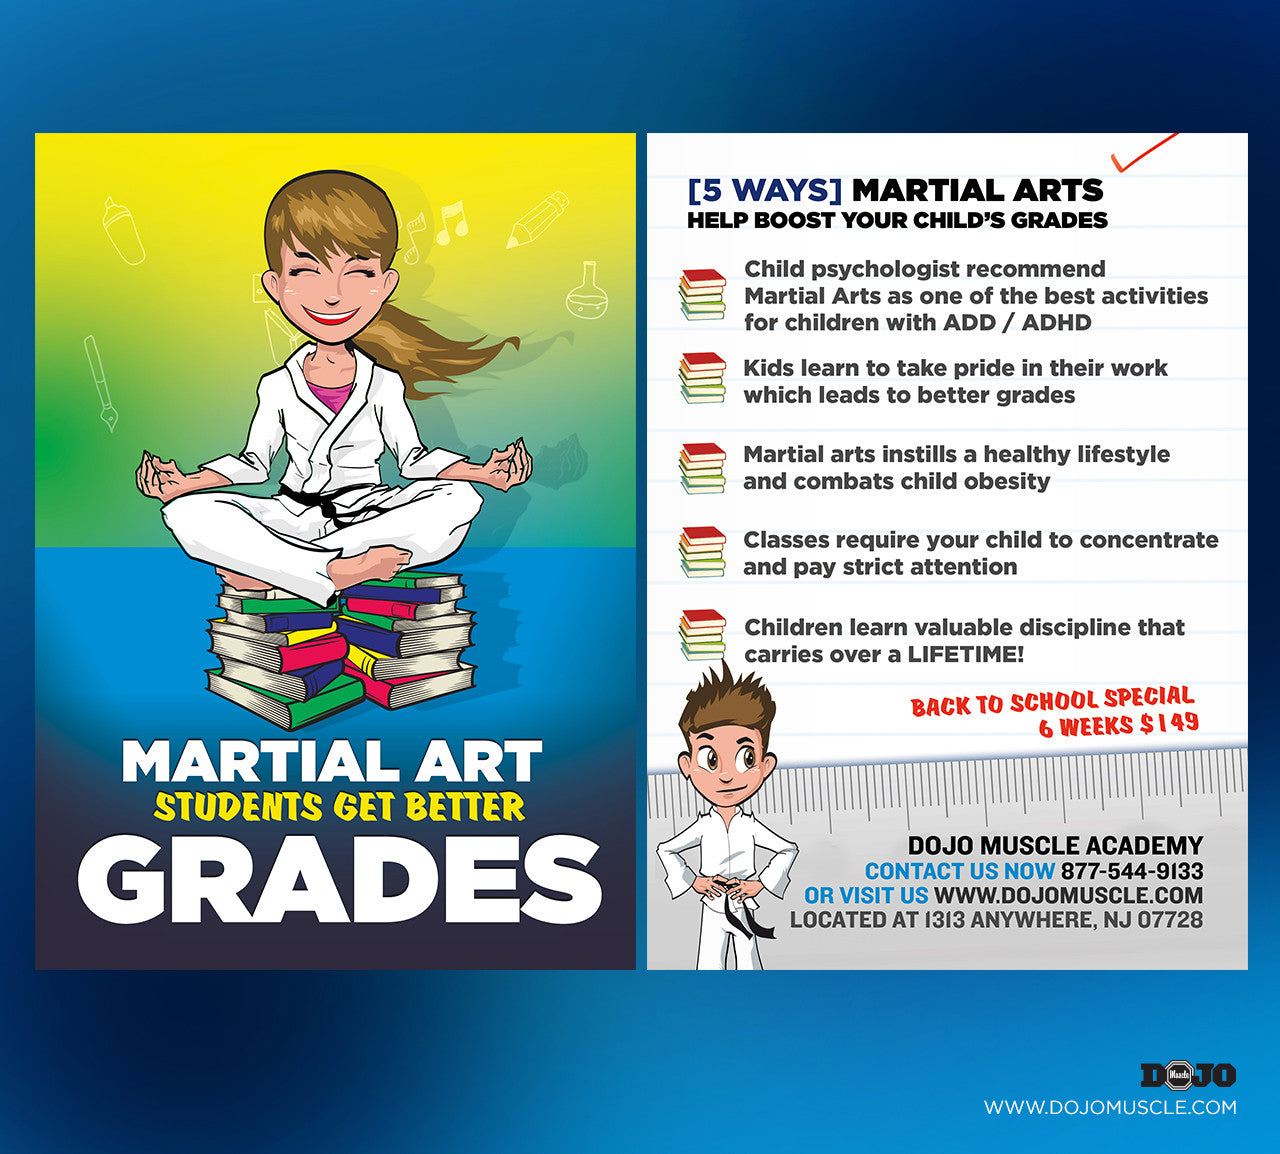 back to school martial arts does this a dojo muscle back to school young kids get better grades